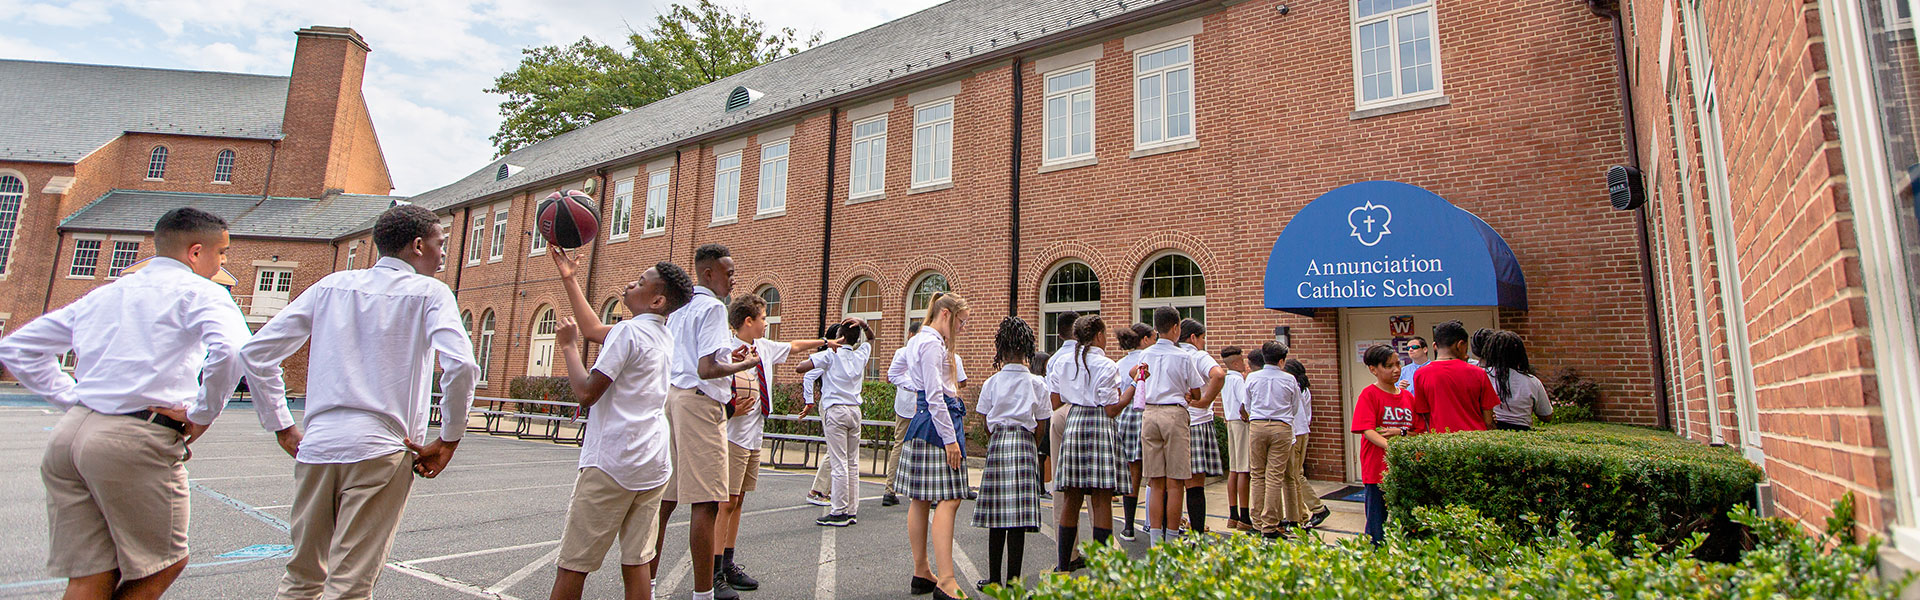 kids playing outside of annunciation catholic school